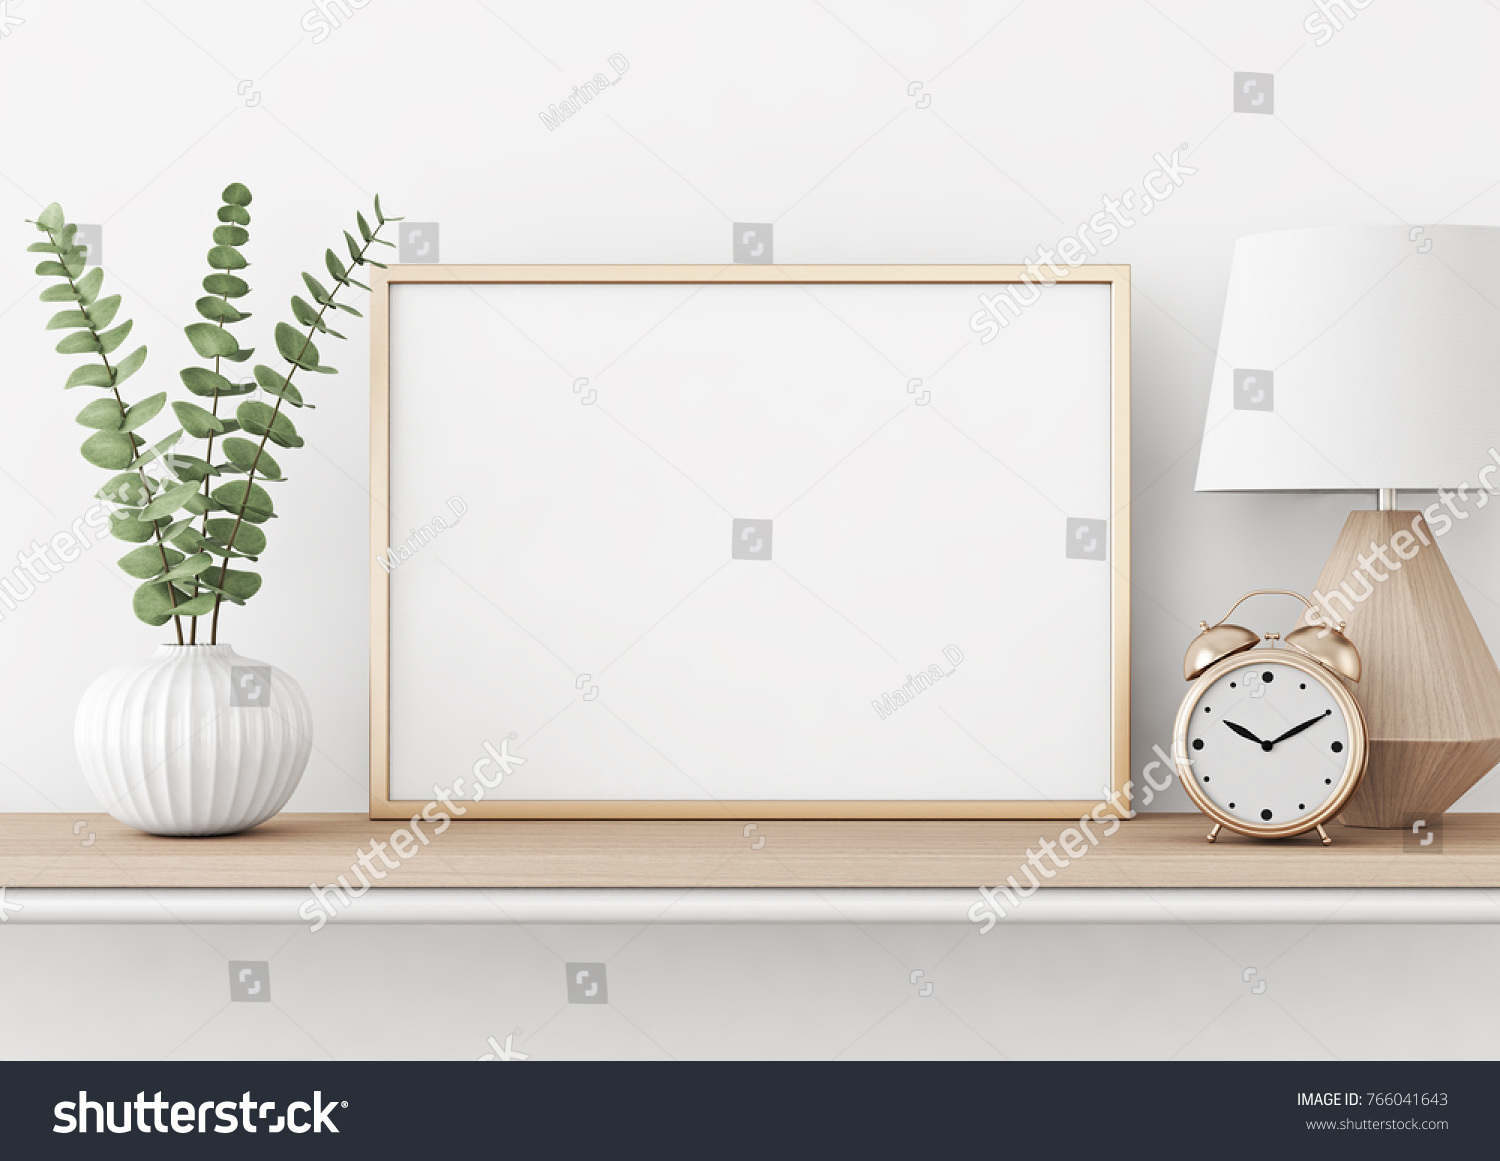 Royalty Free Stock Illustration Of Home Interior Poster Mock